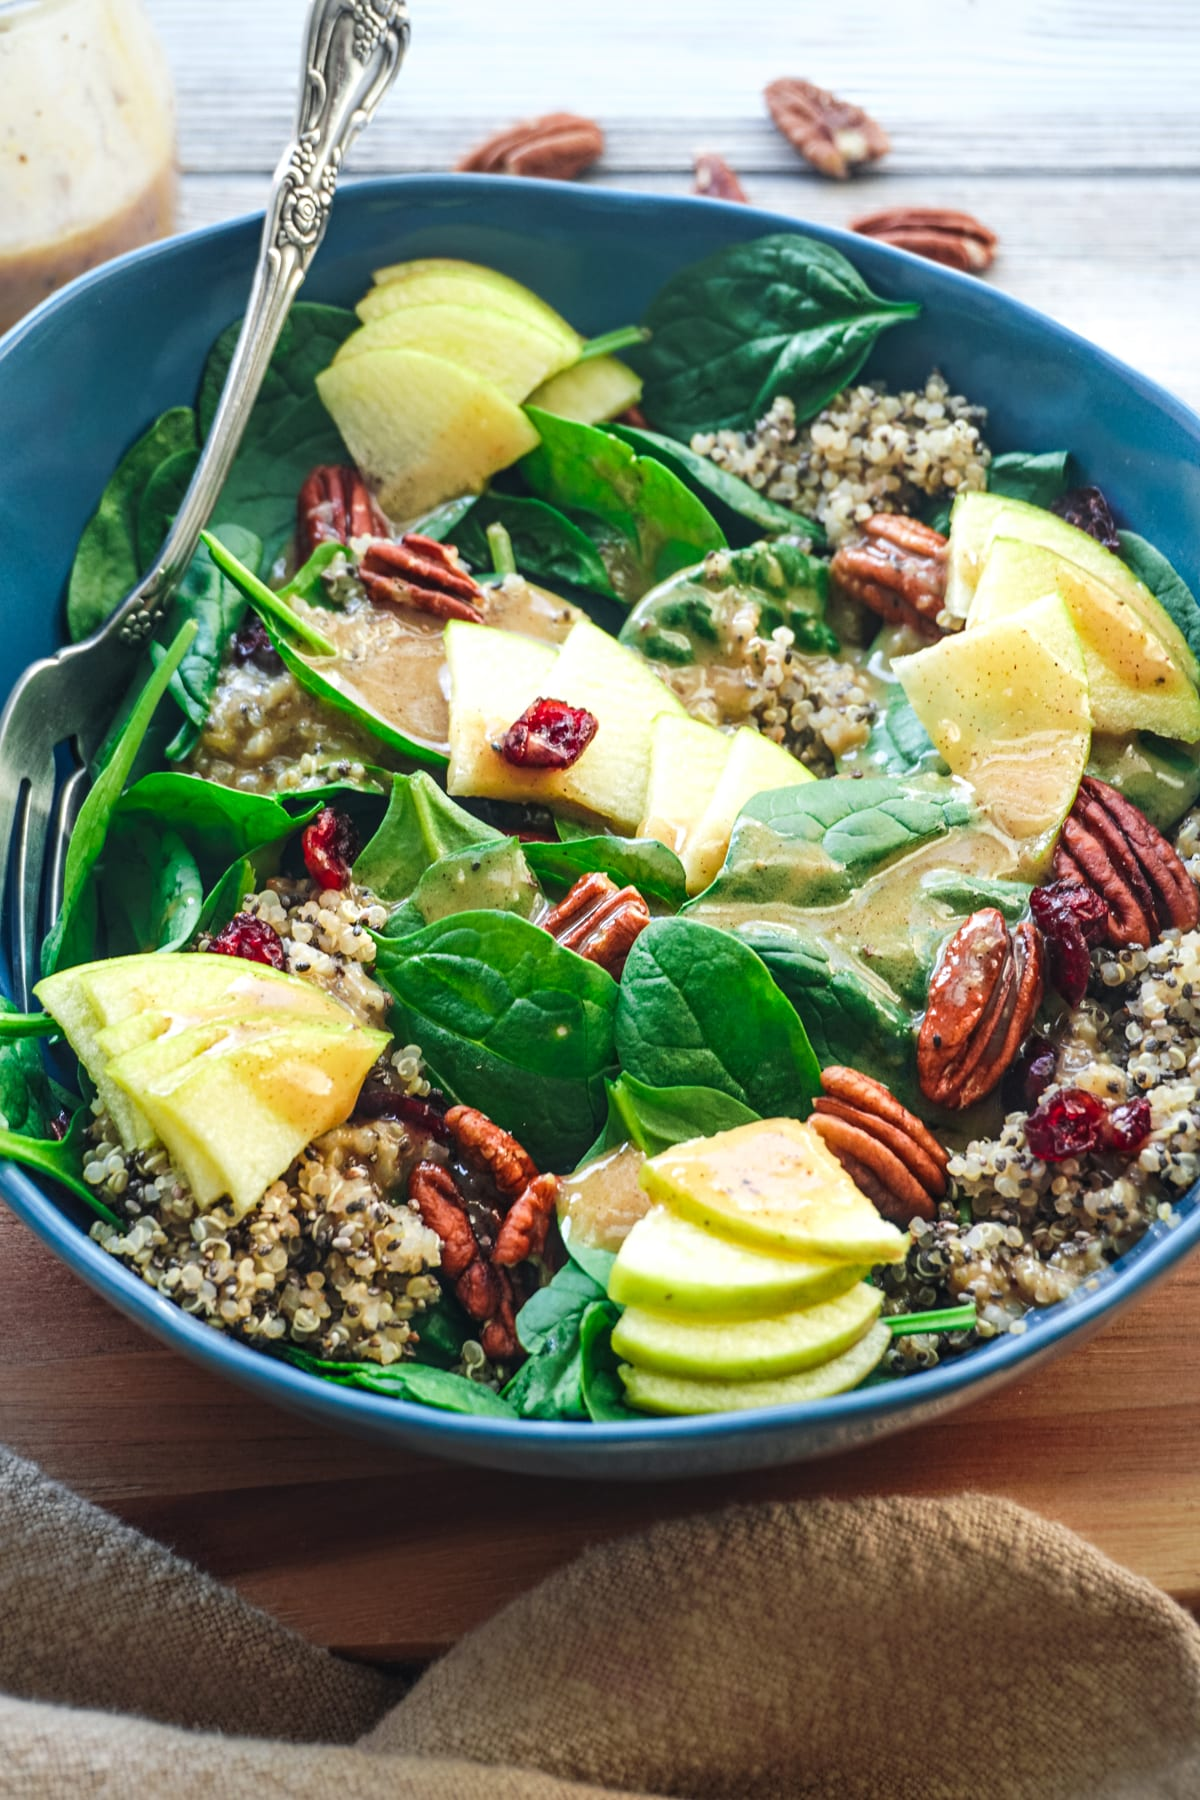 A big blue bowl of fall-inspired salad with a warm nutty dressing